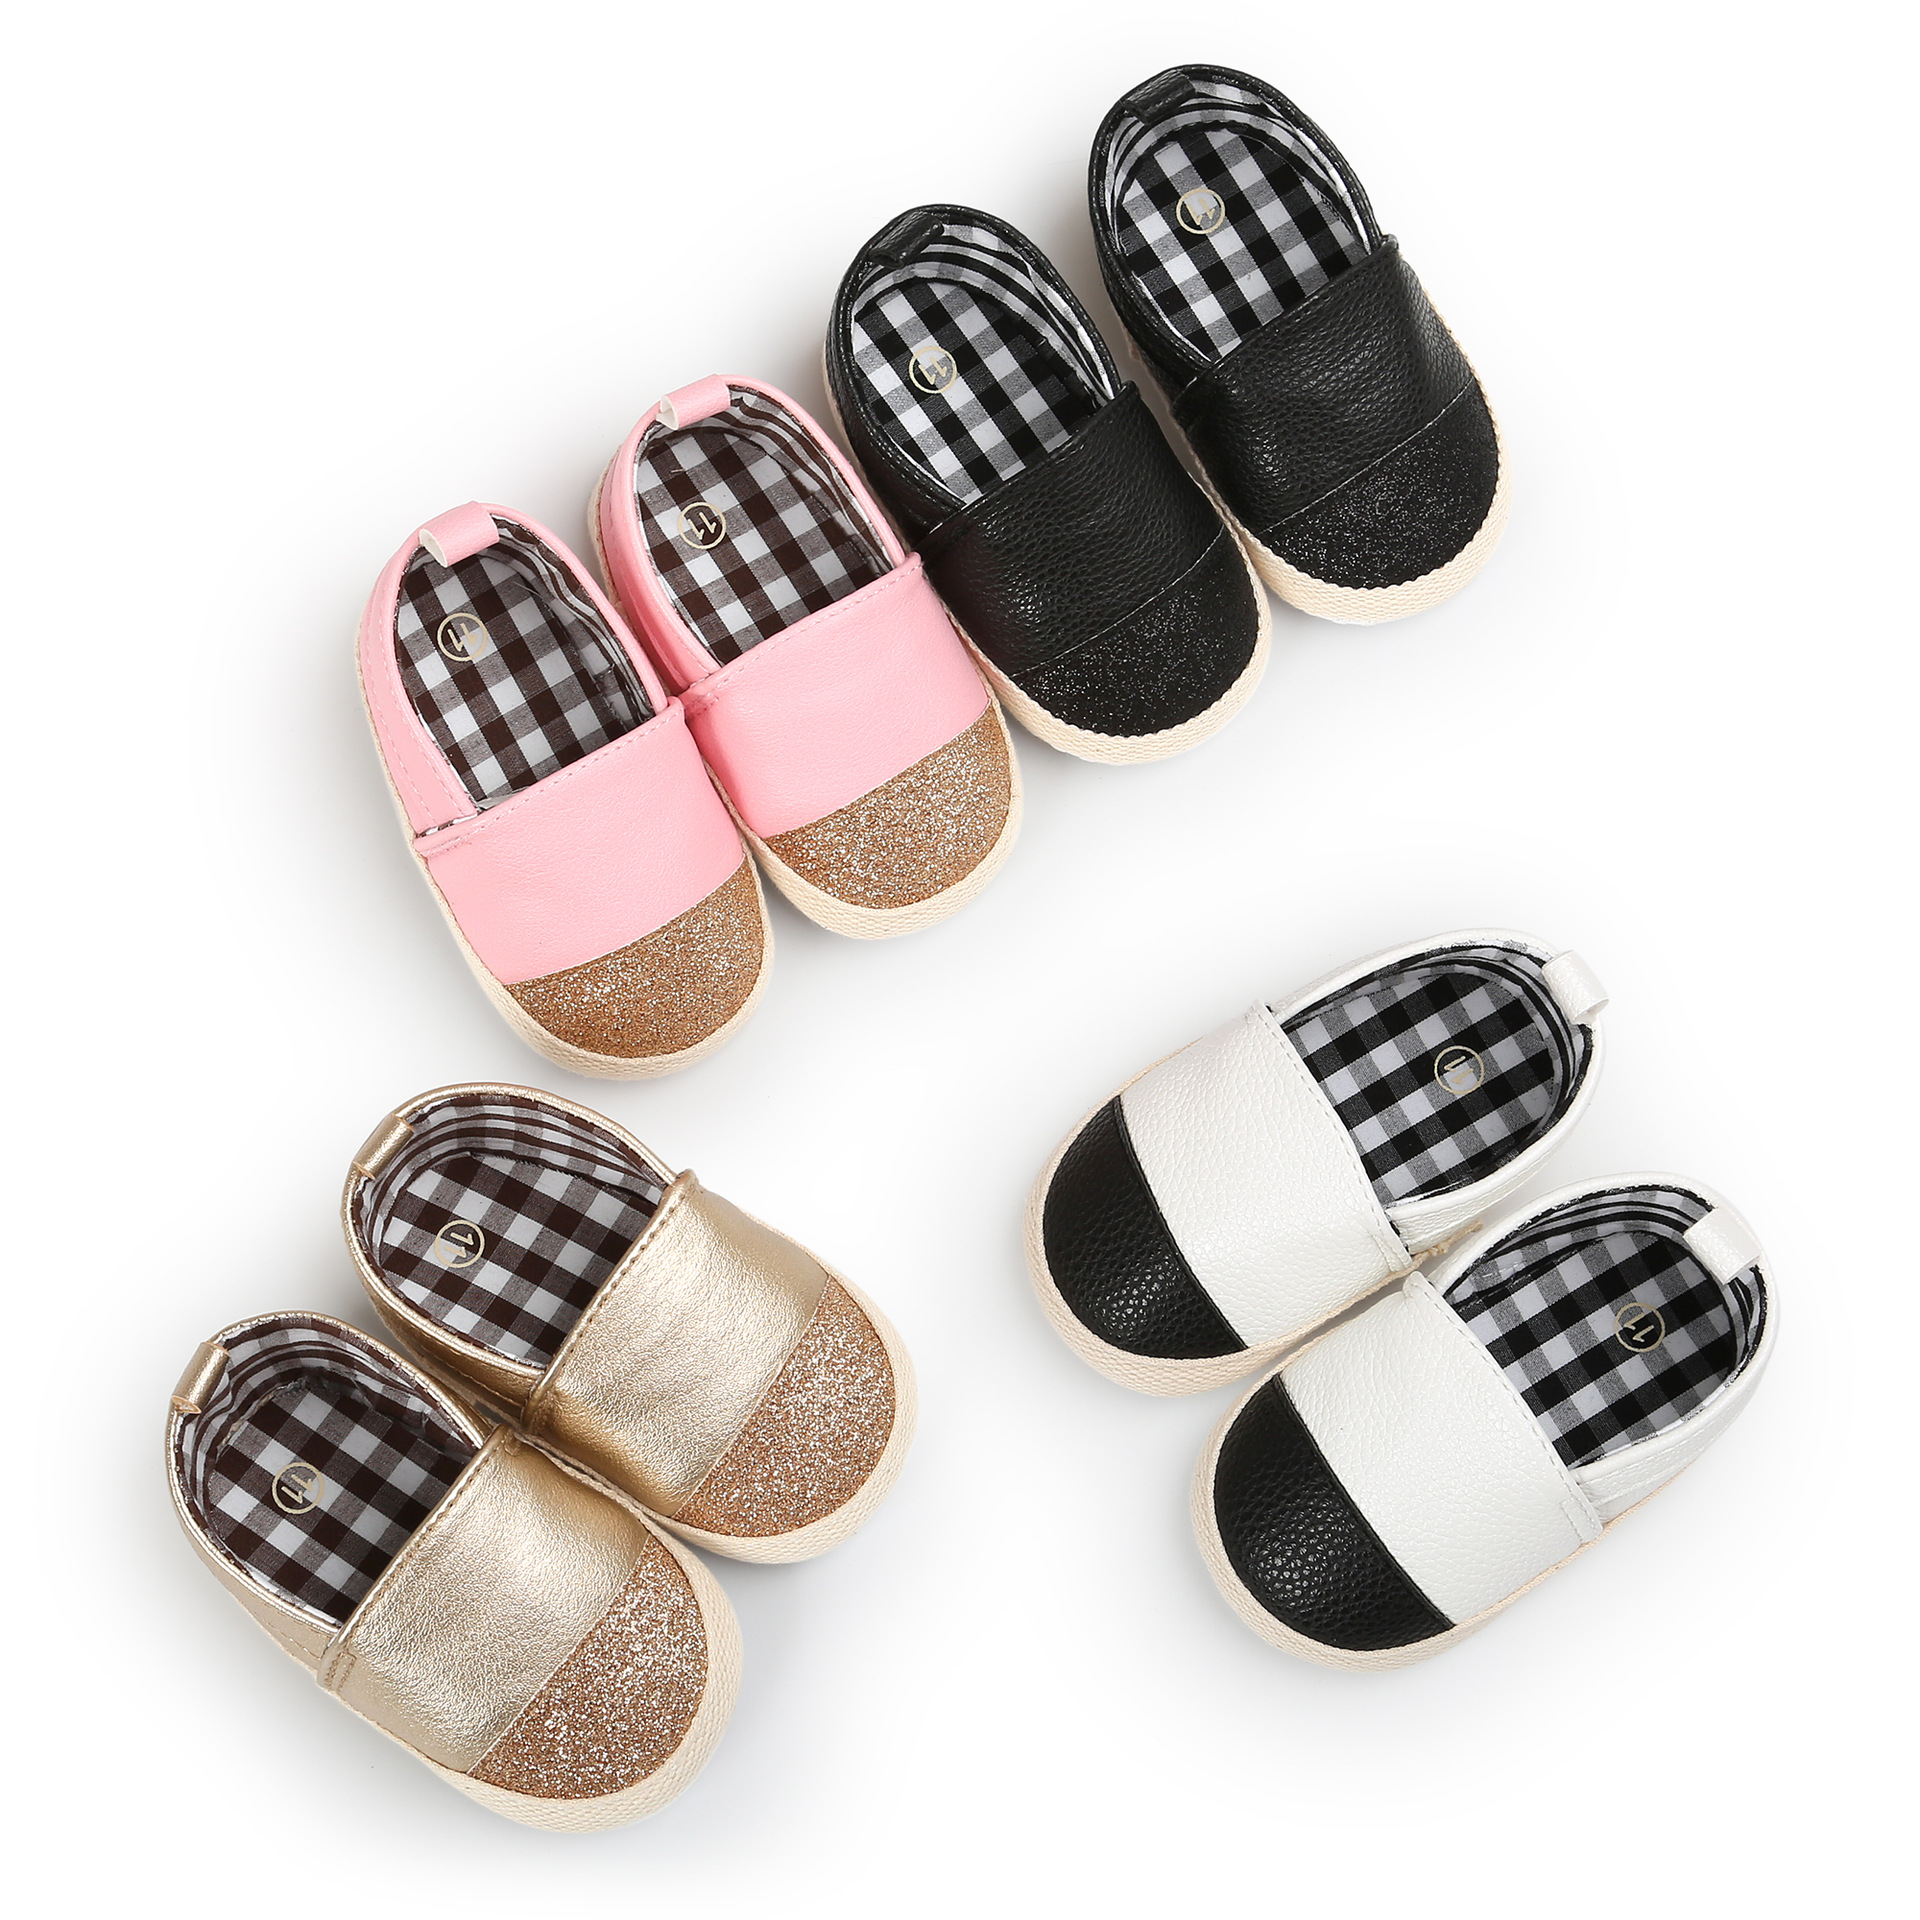 Spring And Autumn Color Matching Gold Powder With Baby Shoes Color Matching Shoes Boys And Girls Baby Feet Fashion Toddler Shoes